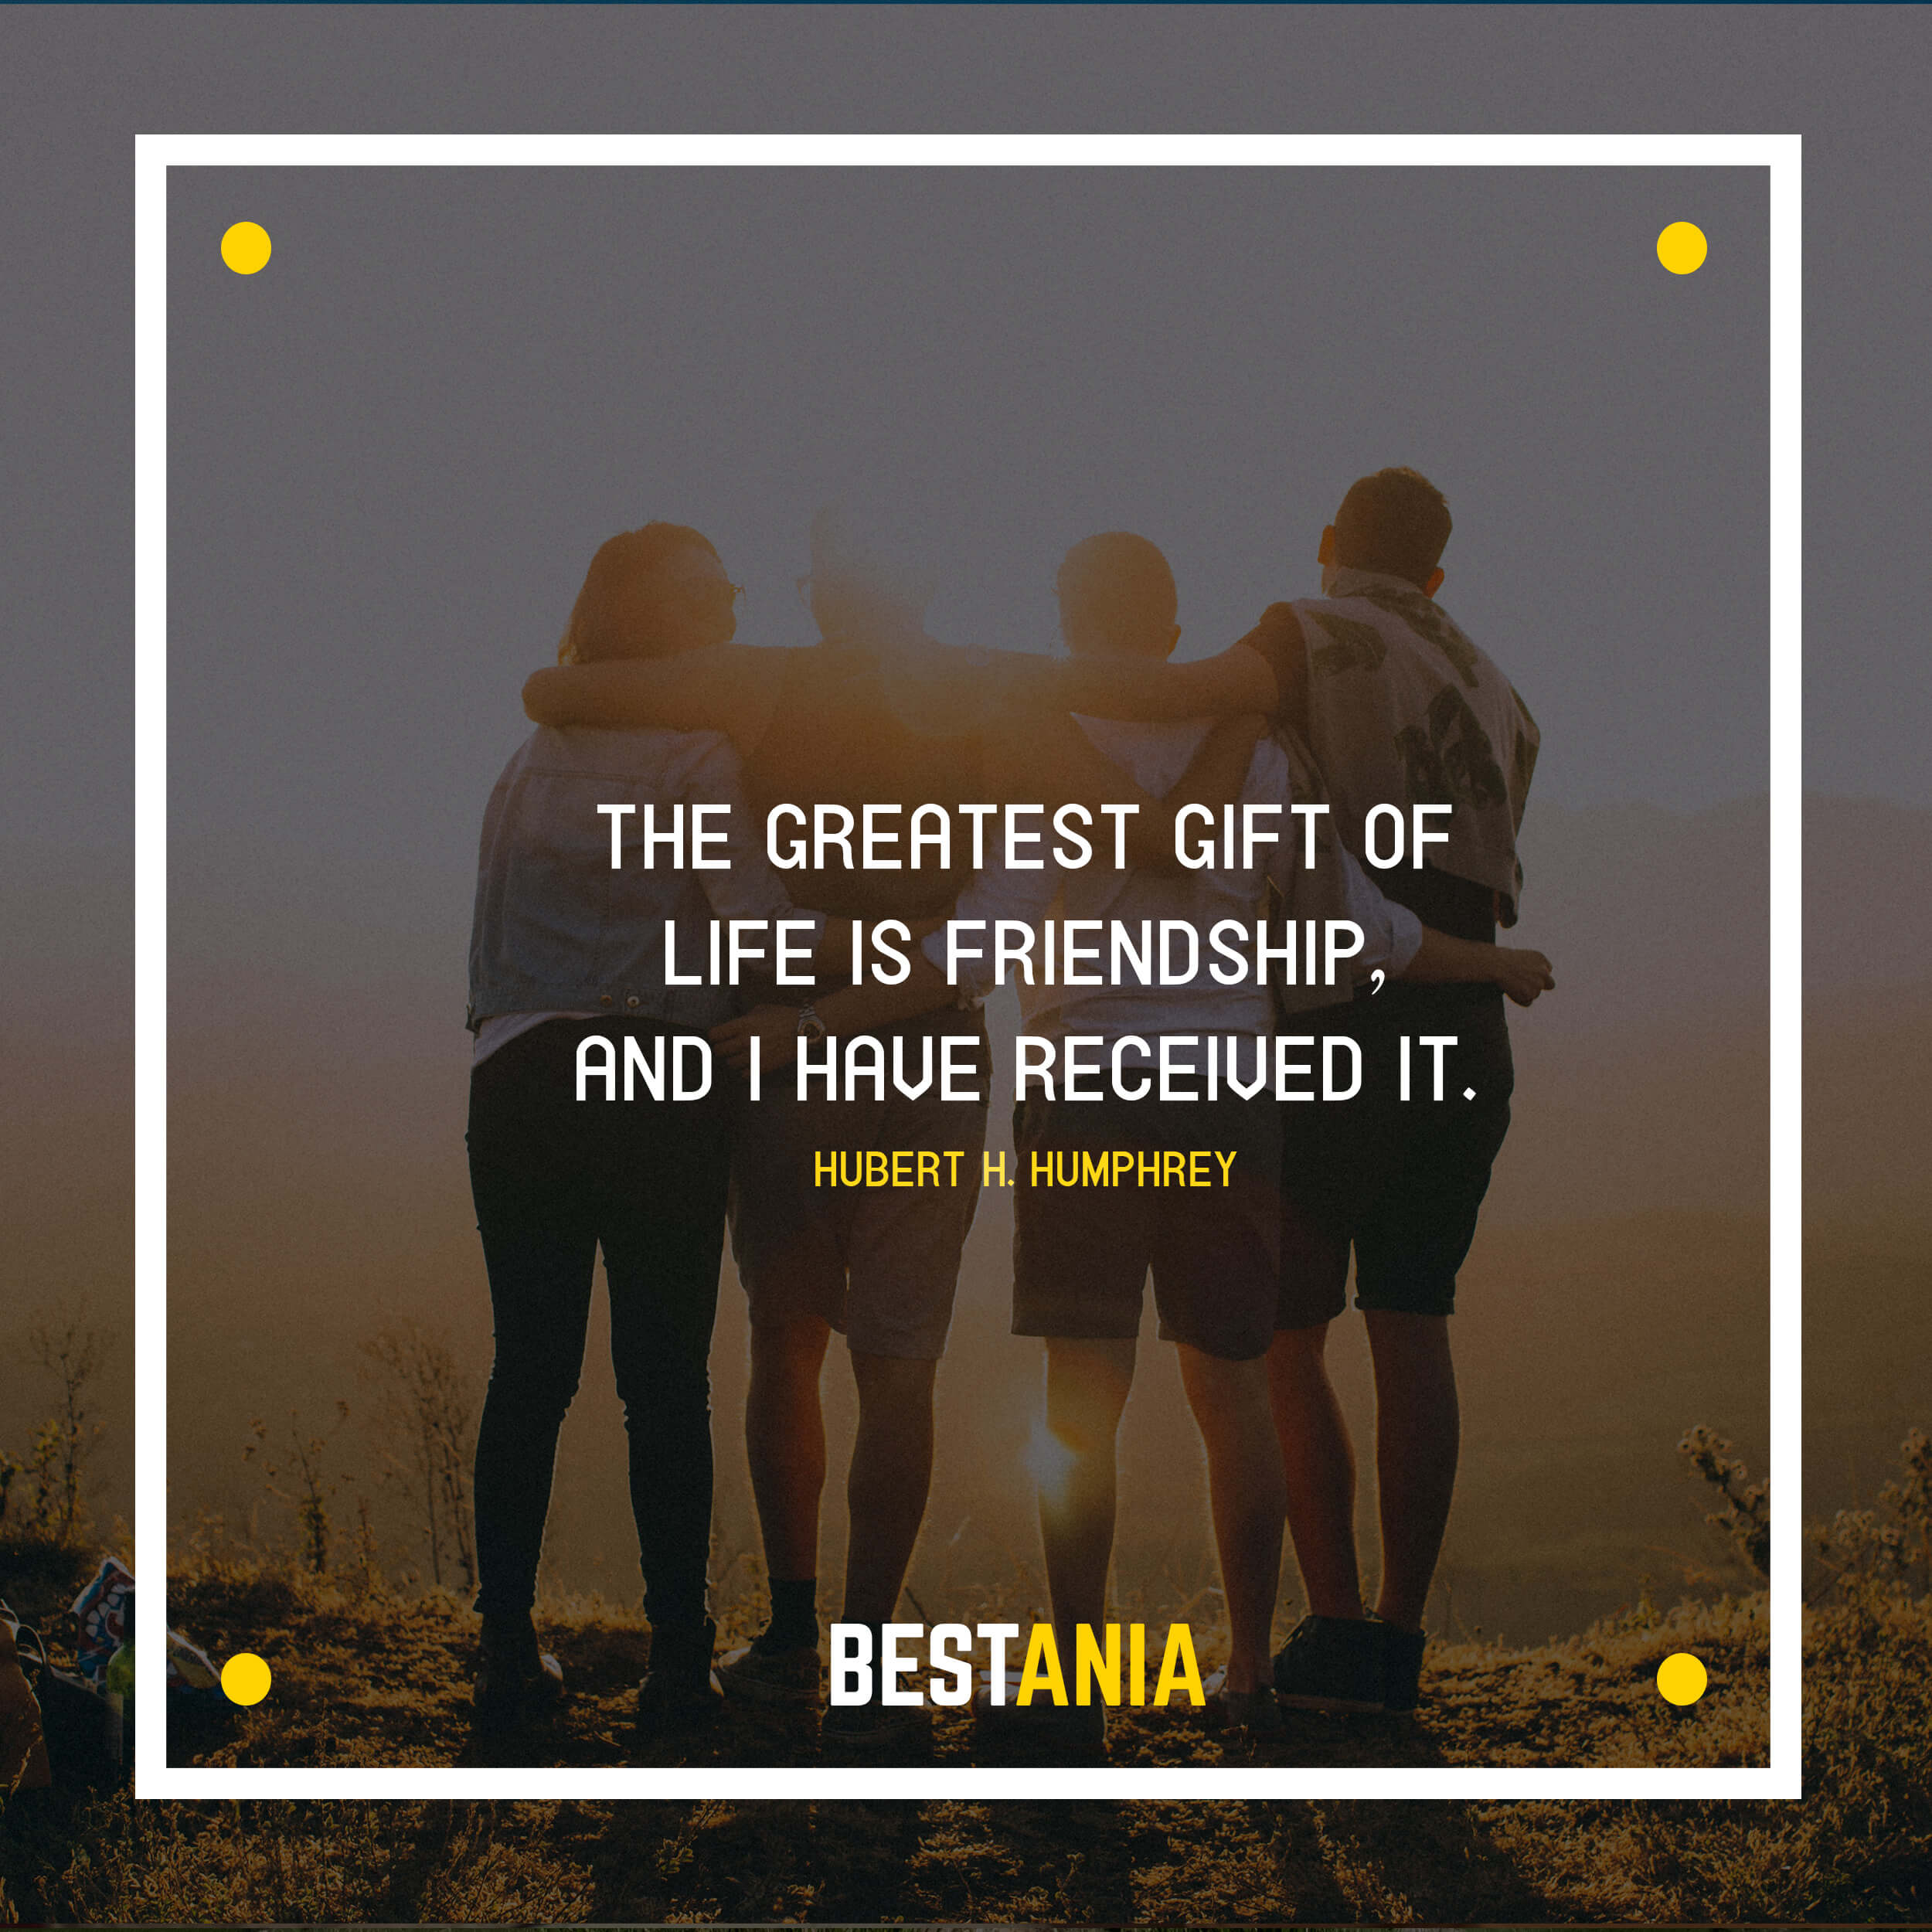 """""""THE GREATEST GIFT OF LIFE IS FRIENDSHIP, AND I HAVE RECEIVED IT.""""  HUBERT H. HUMPHREY"""